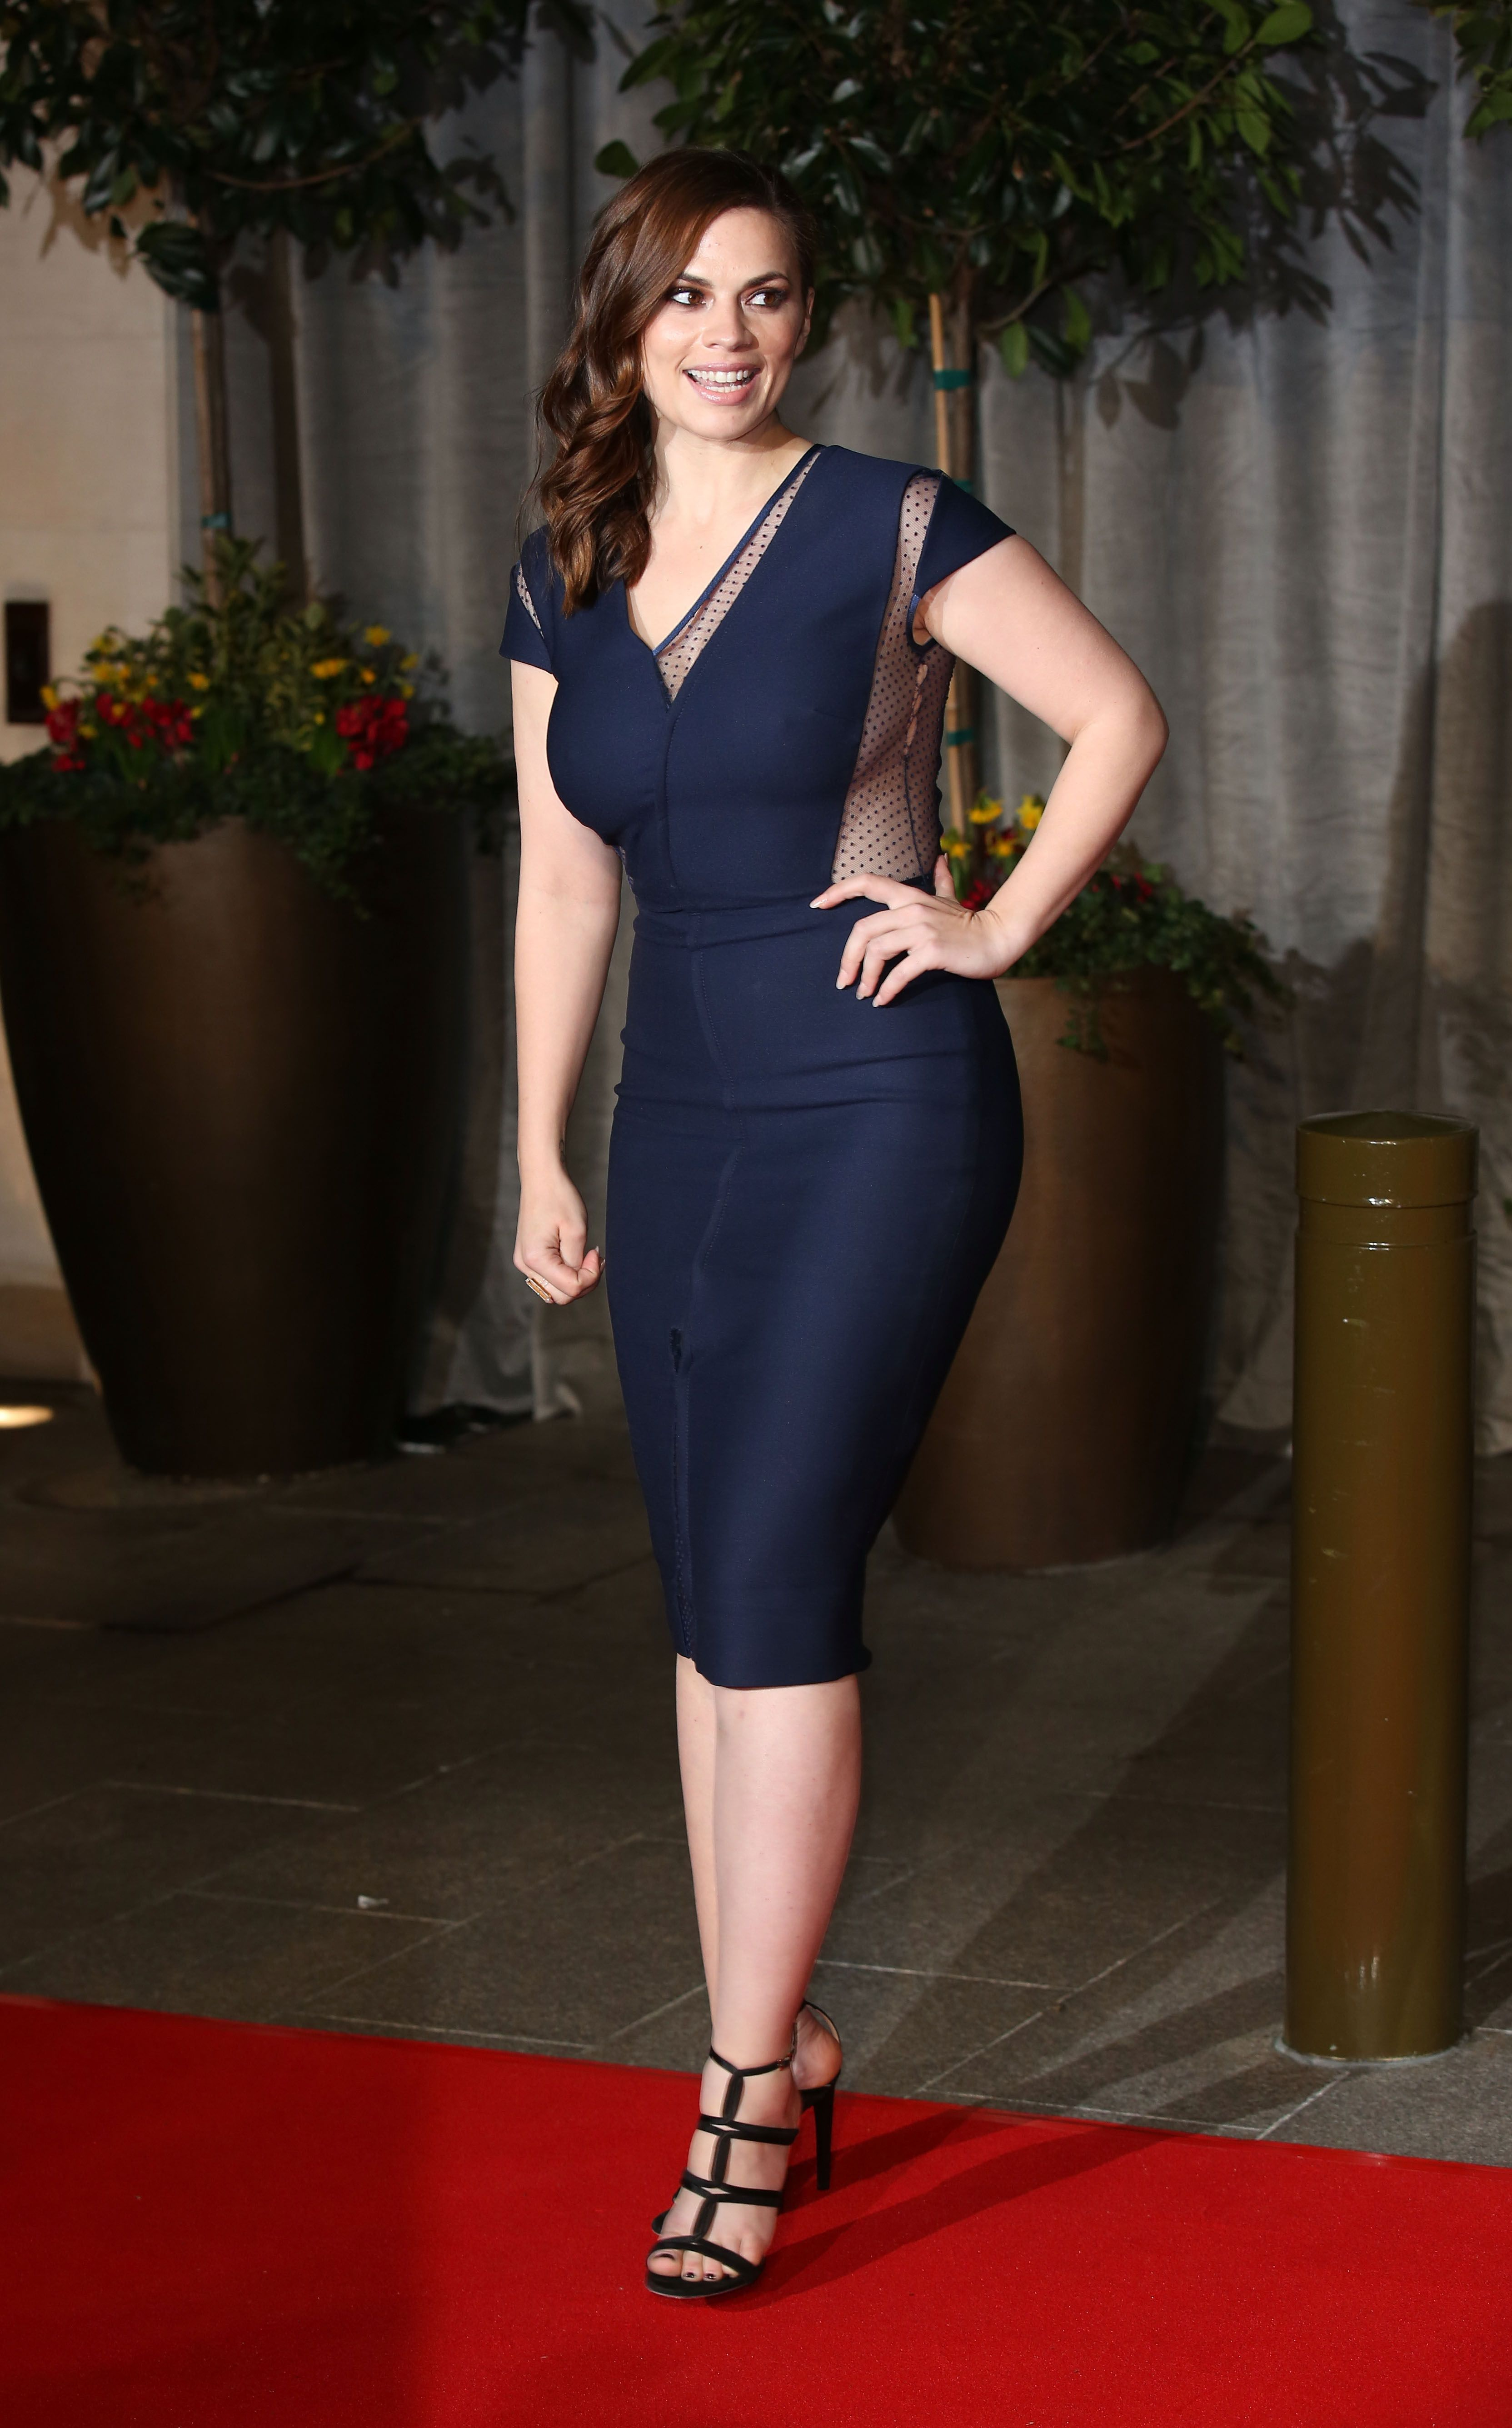 TheFappening Hayley Atwell nude photos 2019